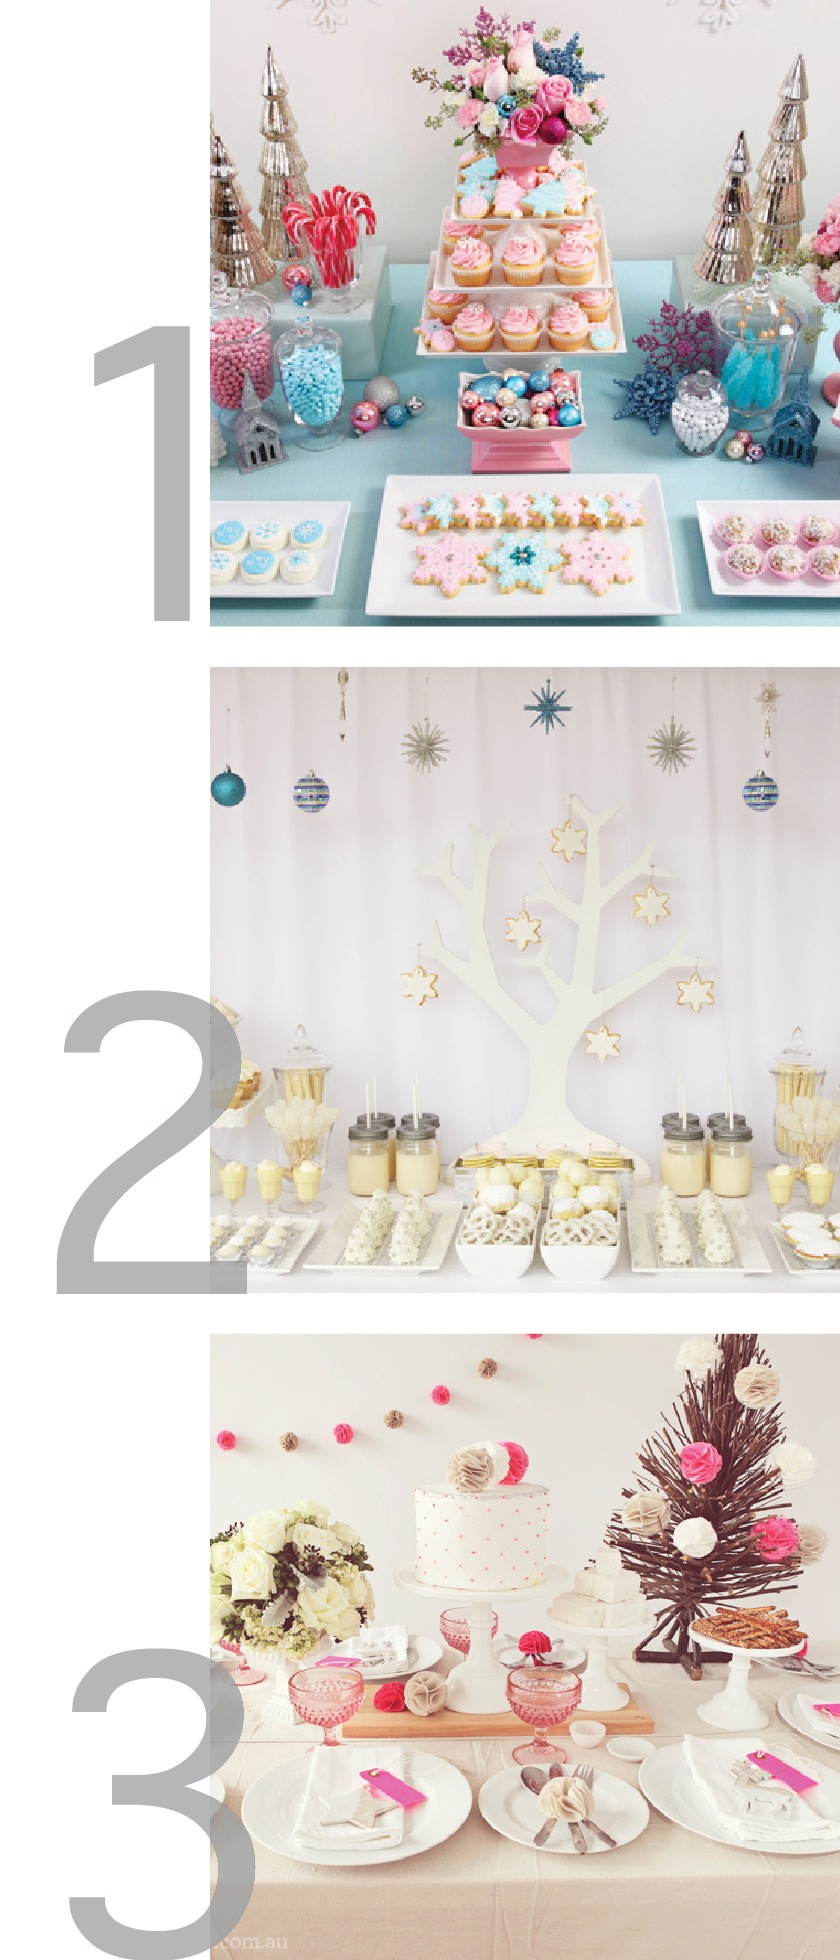 three photos in one graphic showing different table setting ideas for Christmas or other holidays